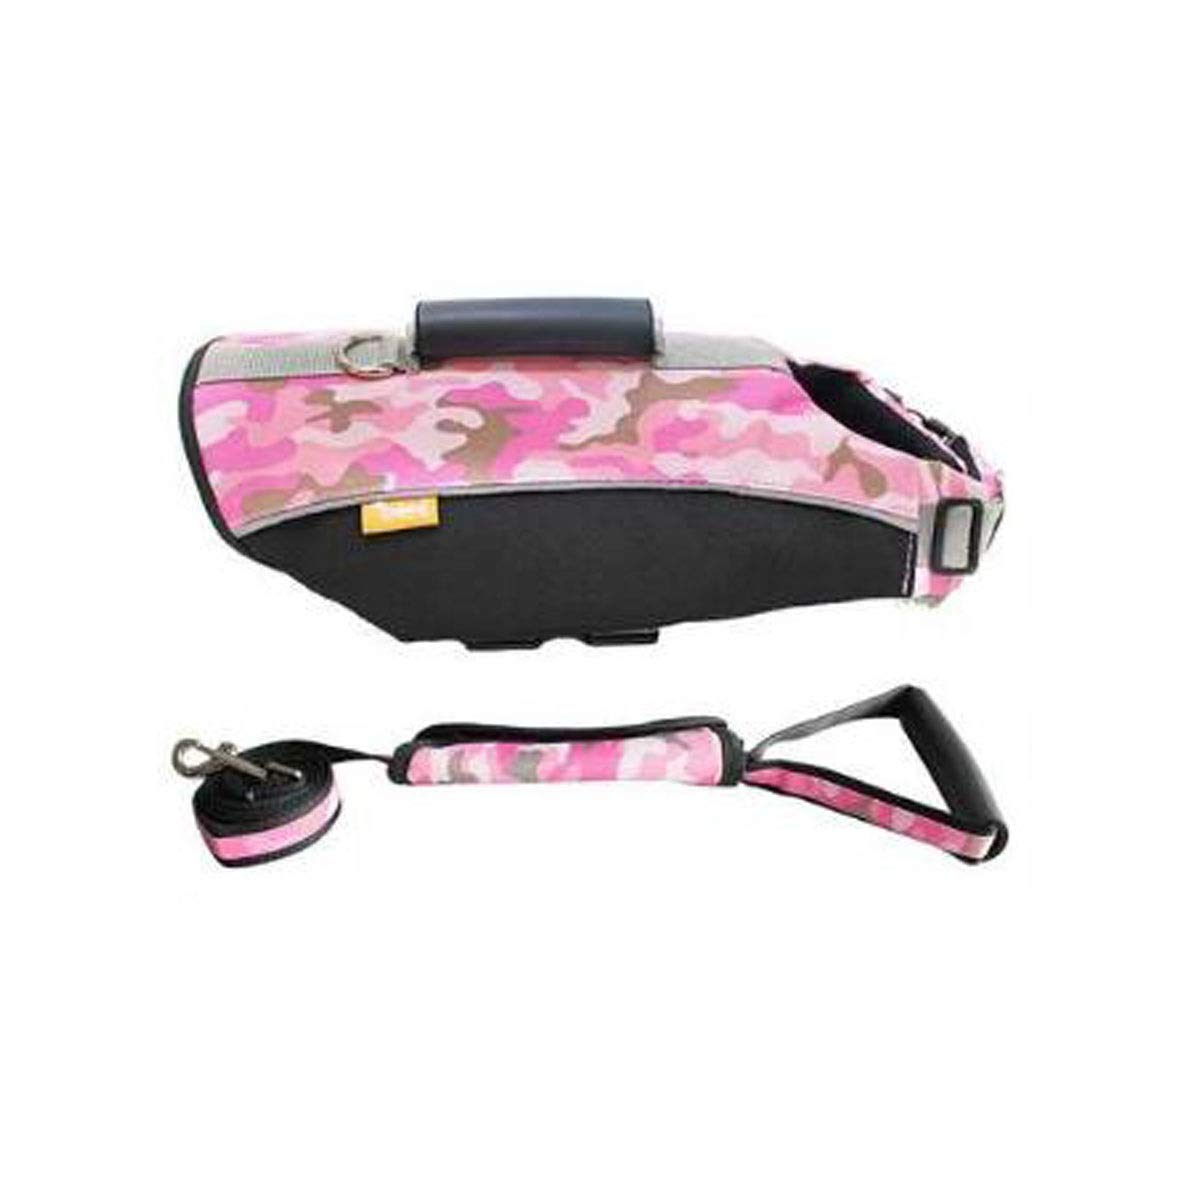 Aishanghuay Life Jacket, Dog's Comfortable and Safe Swimming Vest, Oxford Cloth Quality Material, Pink and Other Multi-Color Optional, Easy to Carry (Size: L, M, XL) Fashion